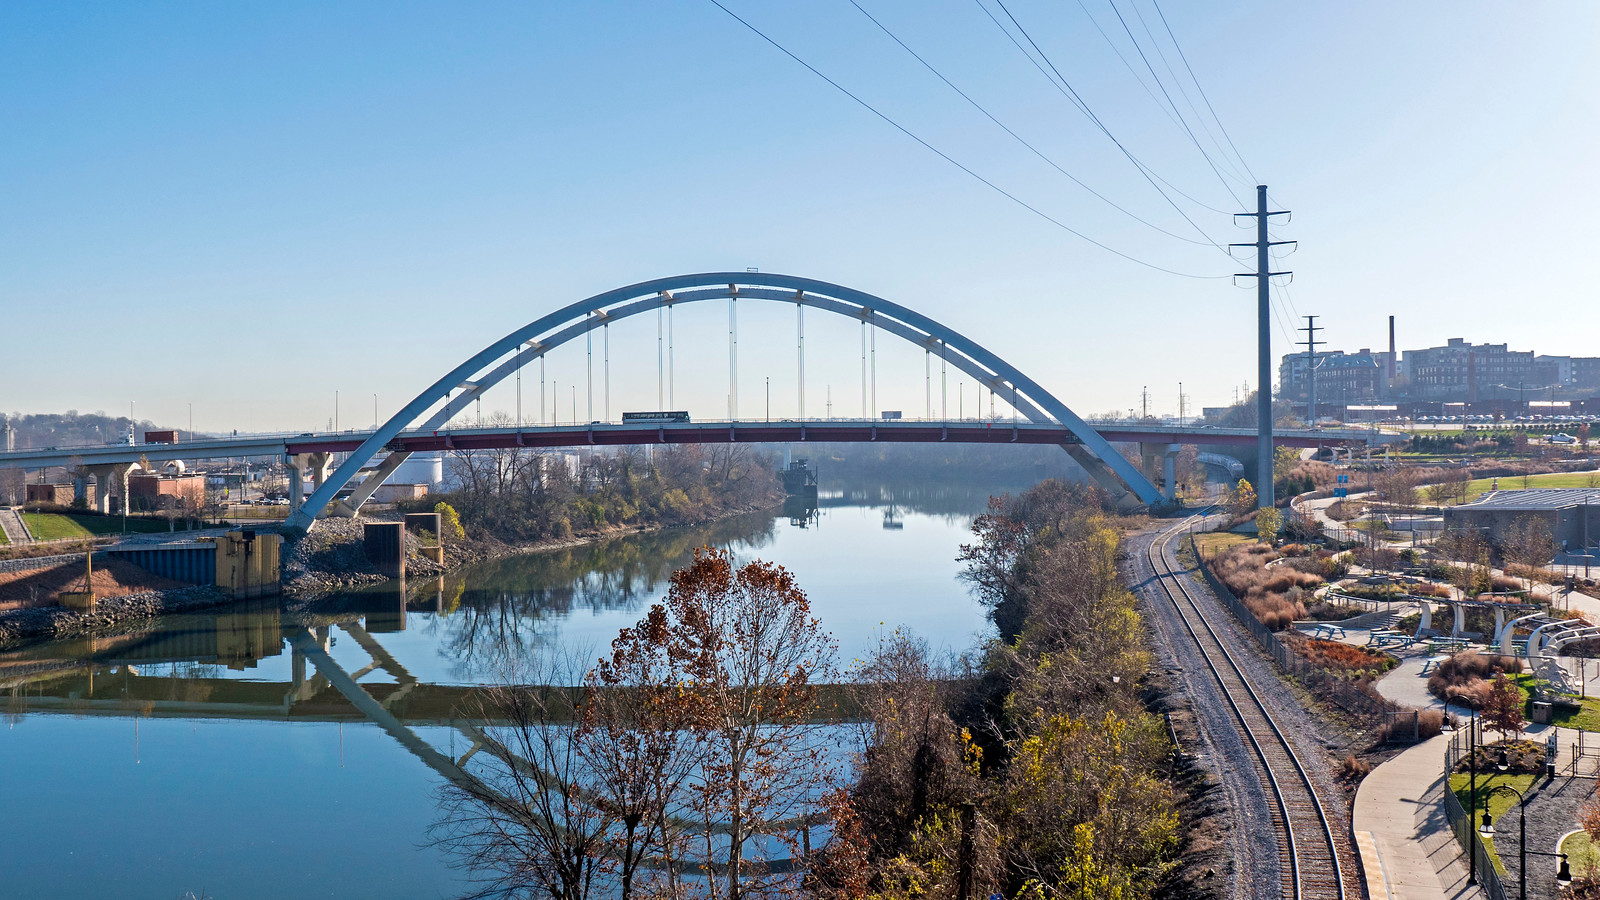 Downtown Nashville Attractions - John Seigenthaler Pedestrian Bridge to Cumberland Park